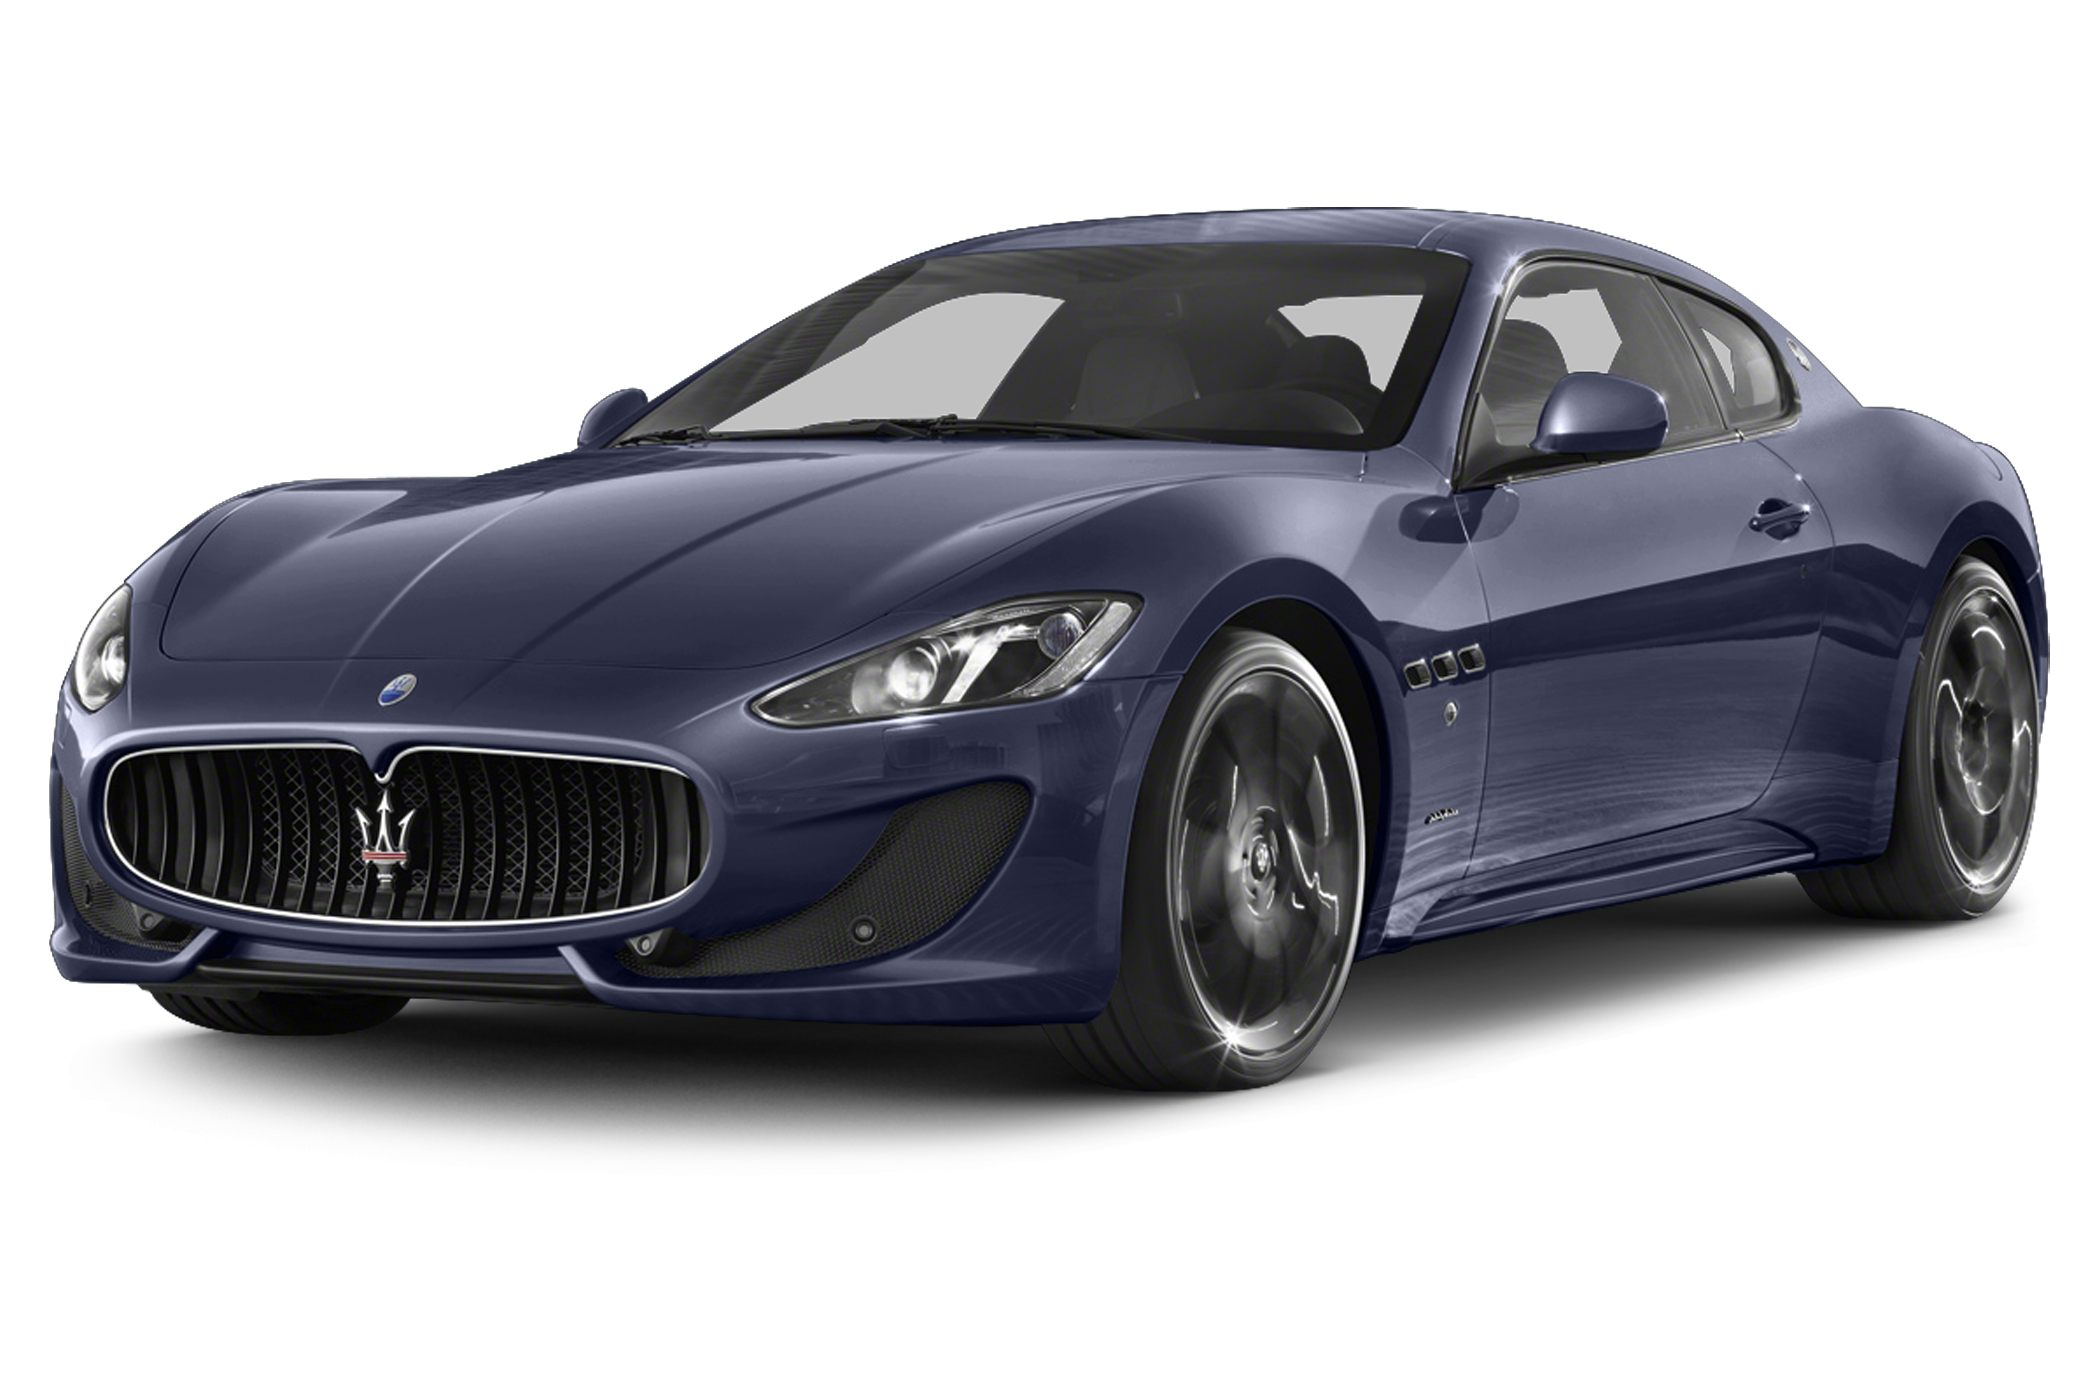 2015 Maserati GranTurismo Sport Coupe for sale in Pasadena for $143,300 with 27 miles.